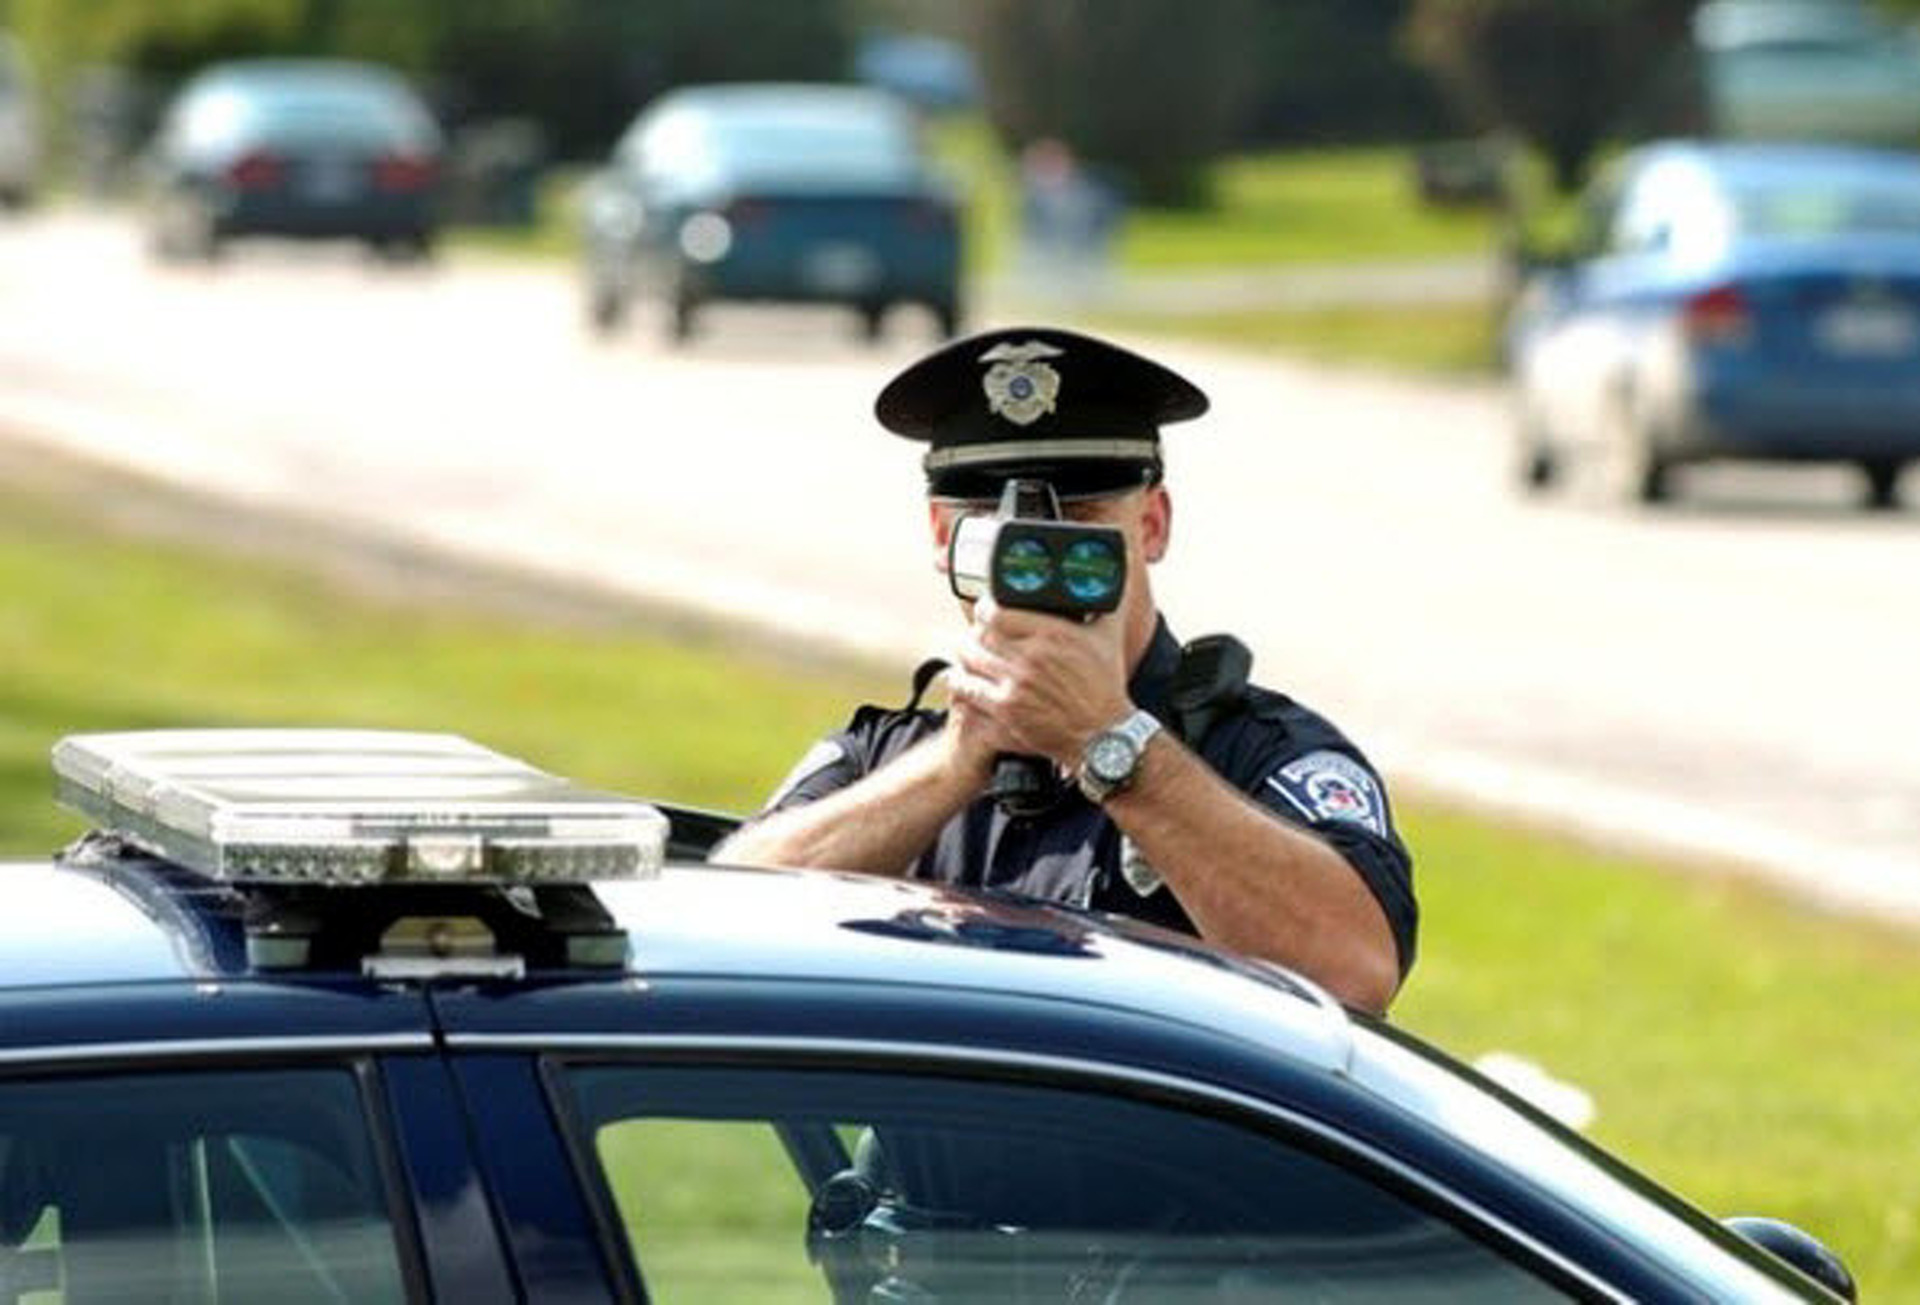 Most Popular This Week: DARPA Hacking Cars & The Worst States For Speeders